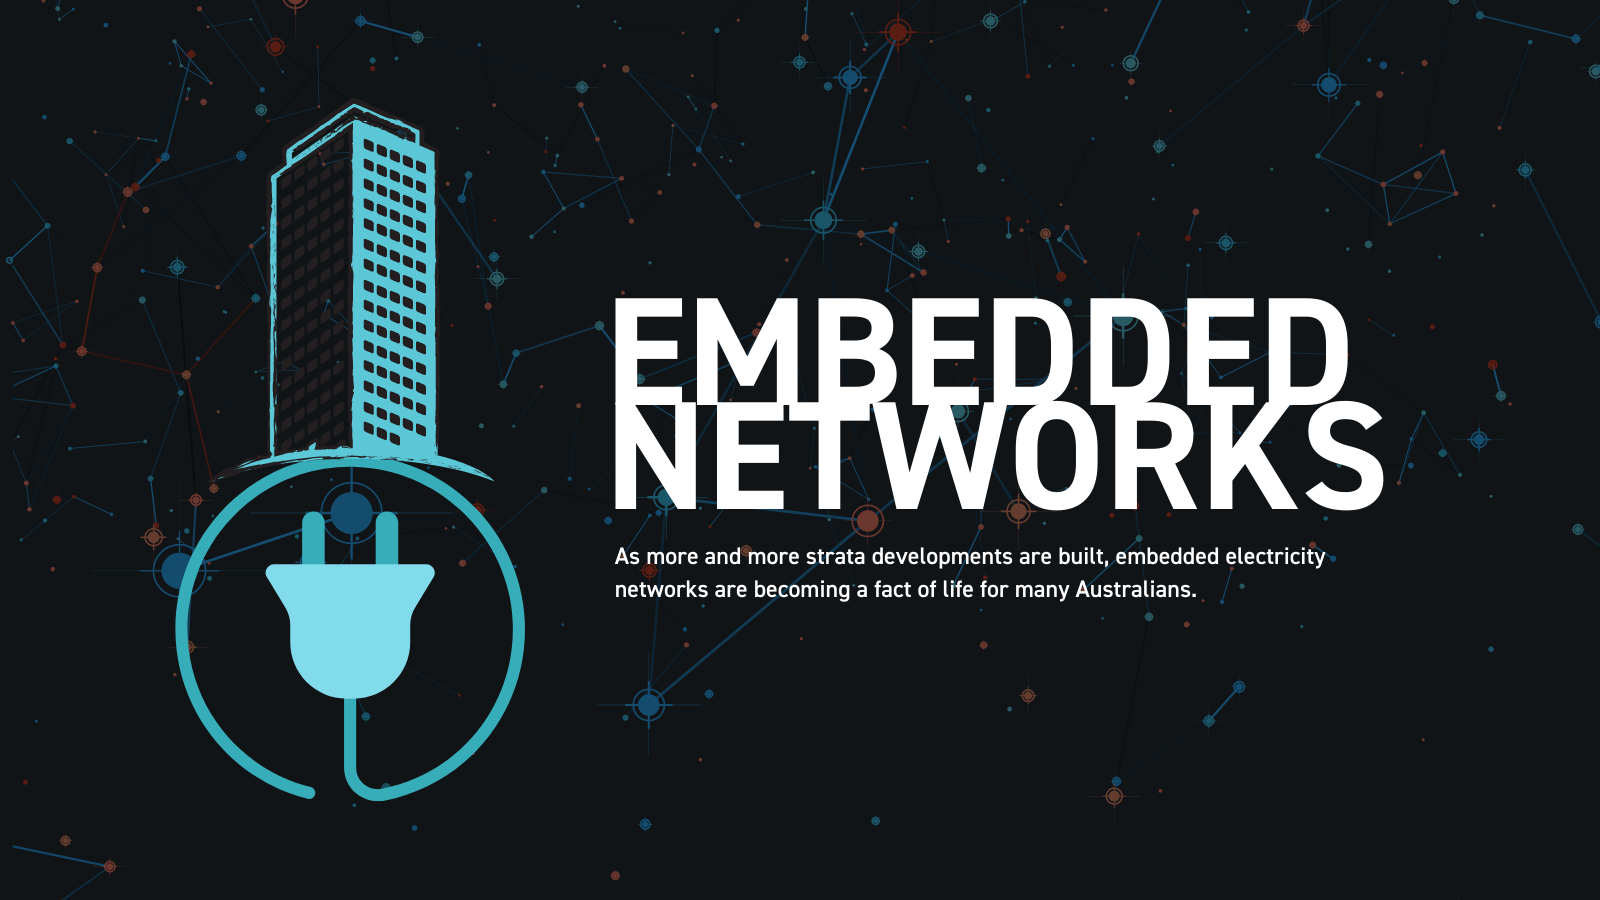 embedded networks - owners corporation - body corporate